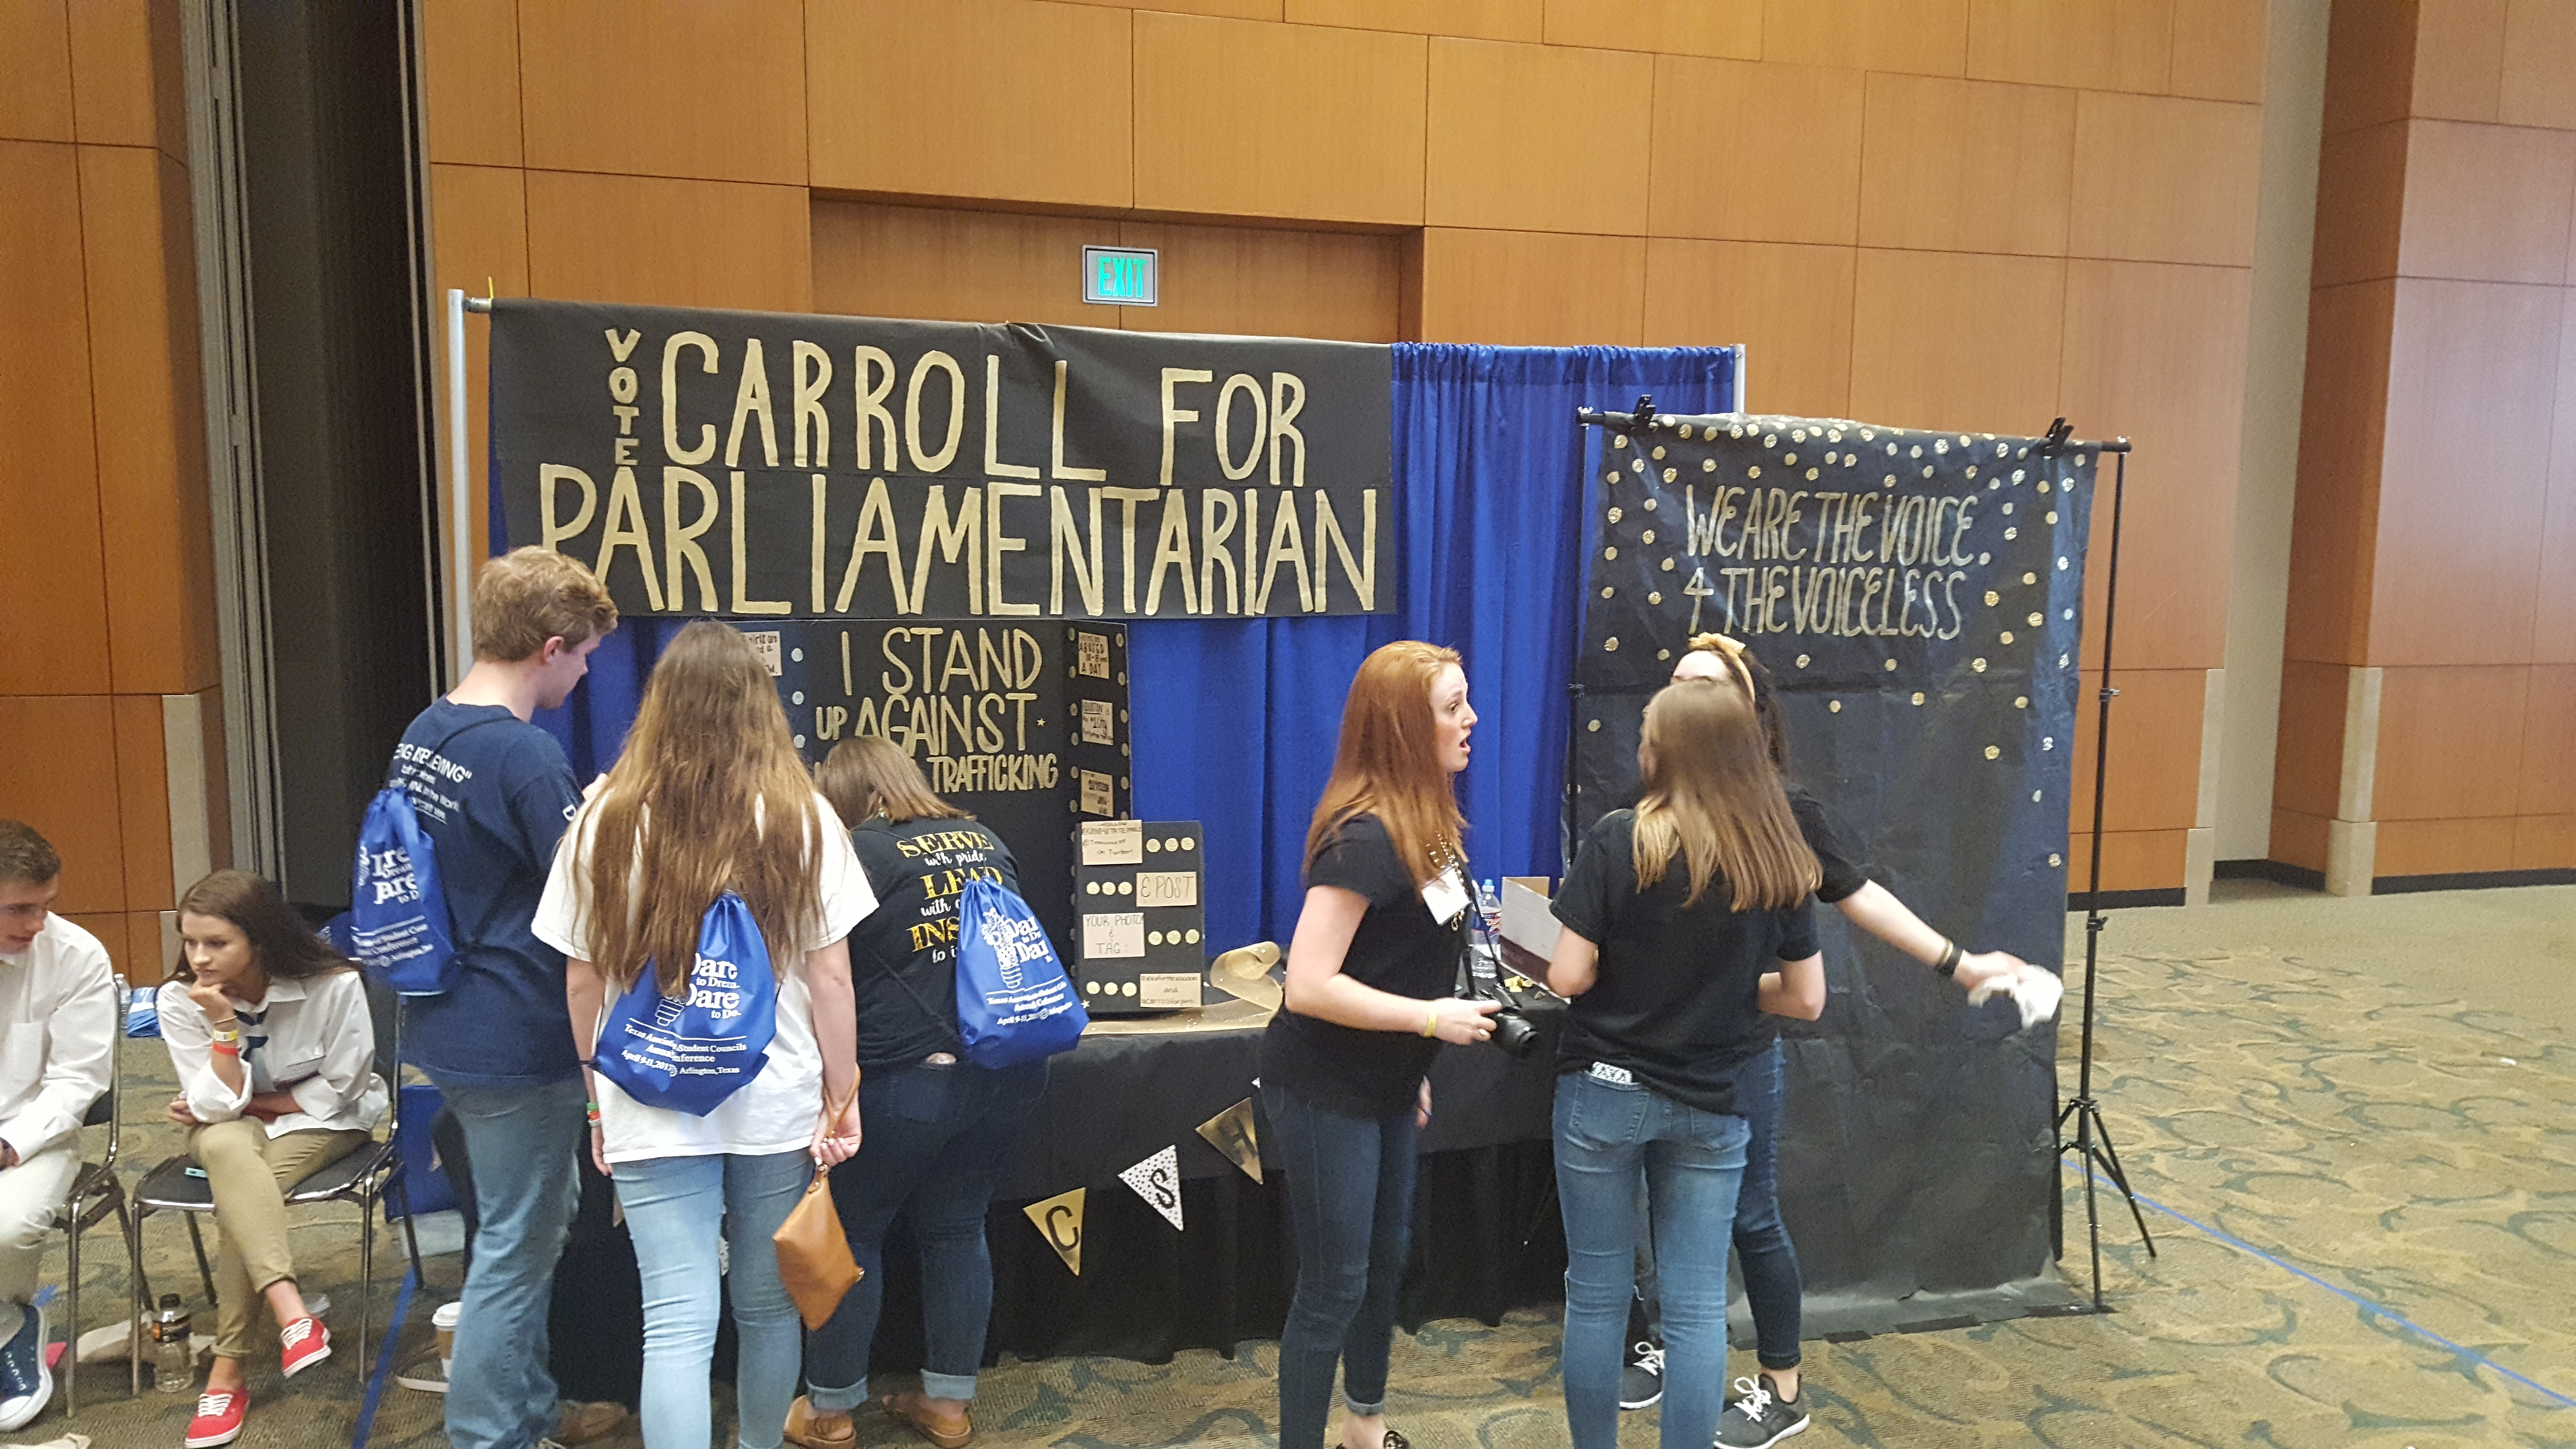 Running for state parliamentarian